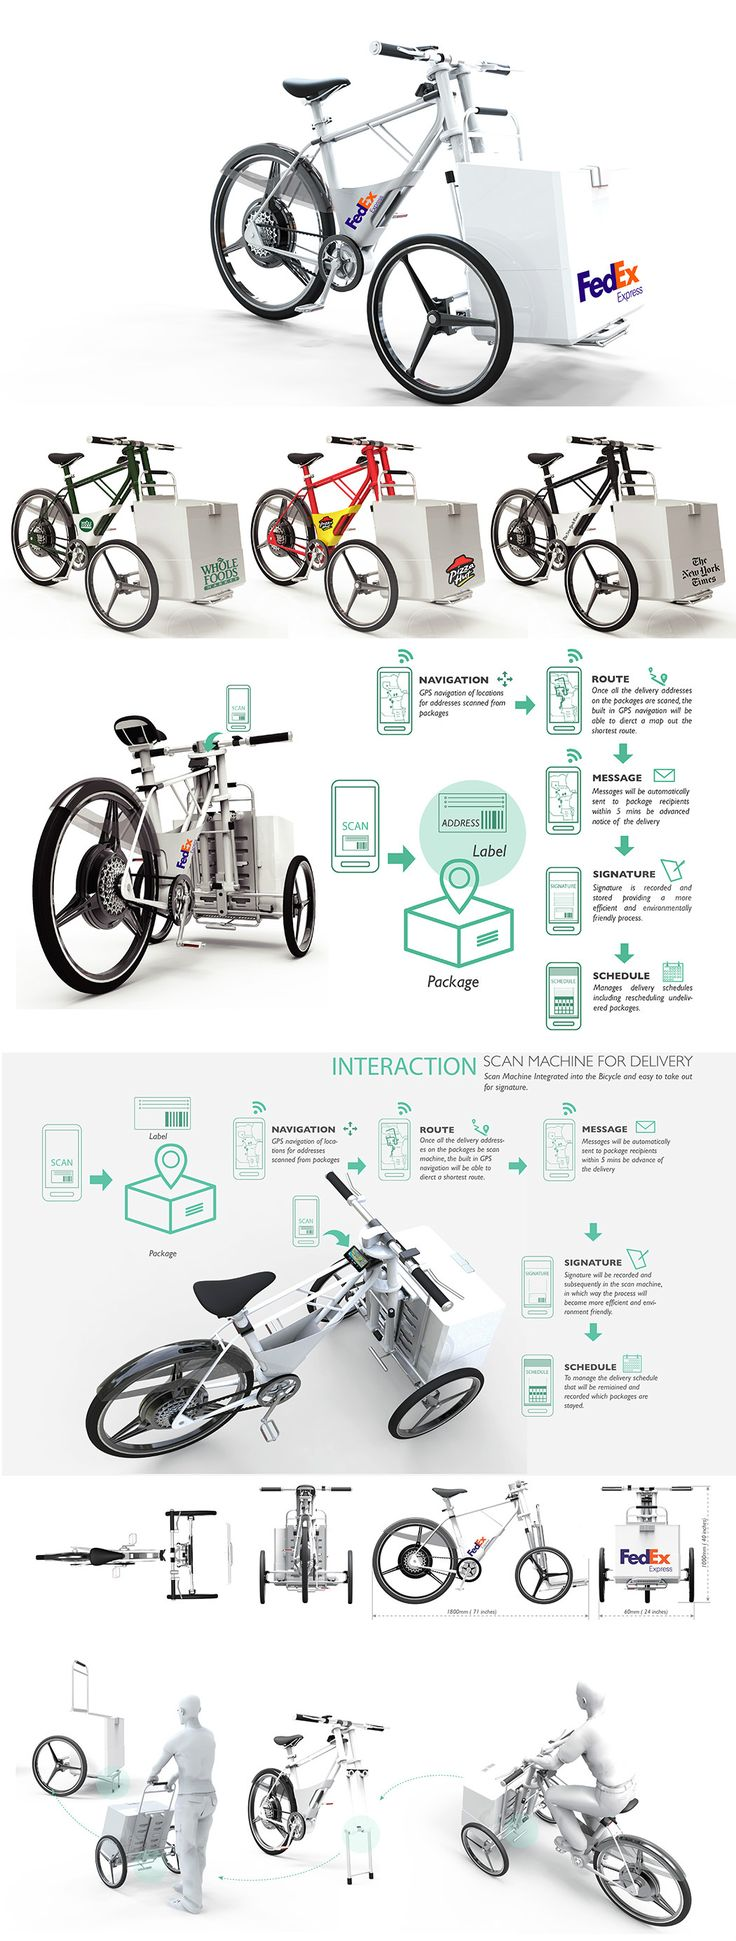 Designed for delivery services, the Cargo Urban Eco-Bicycle is a more environmental and efficient space-saving delivery method.